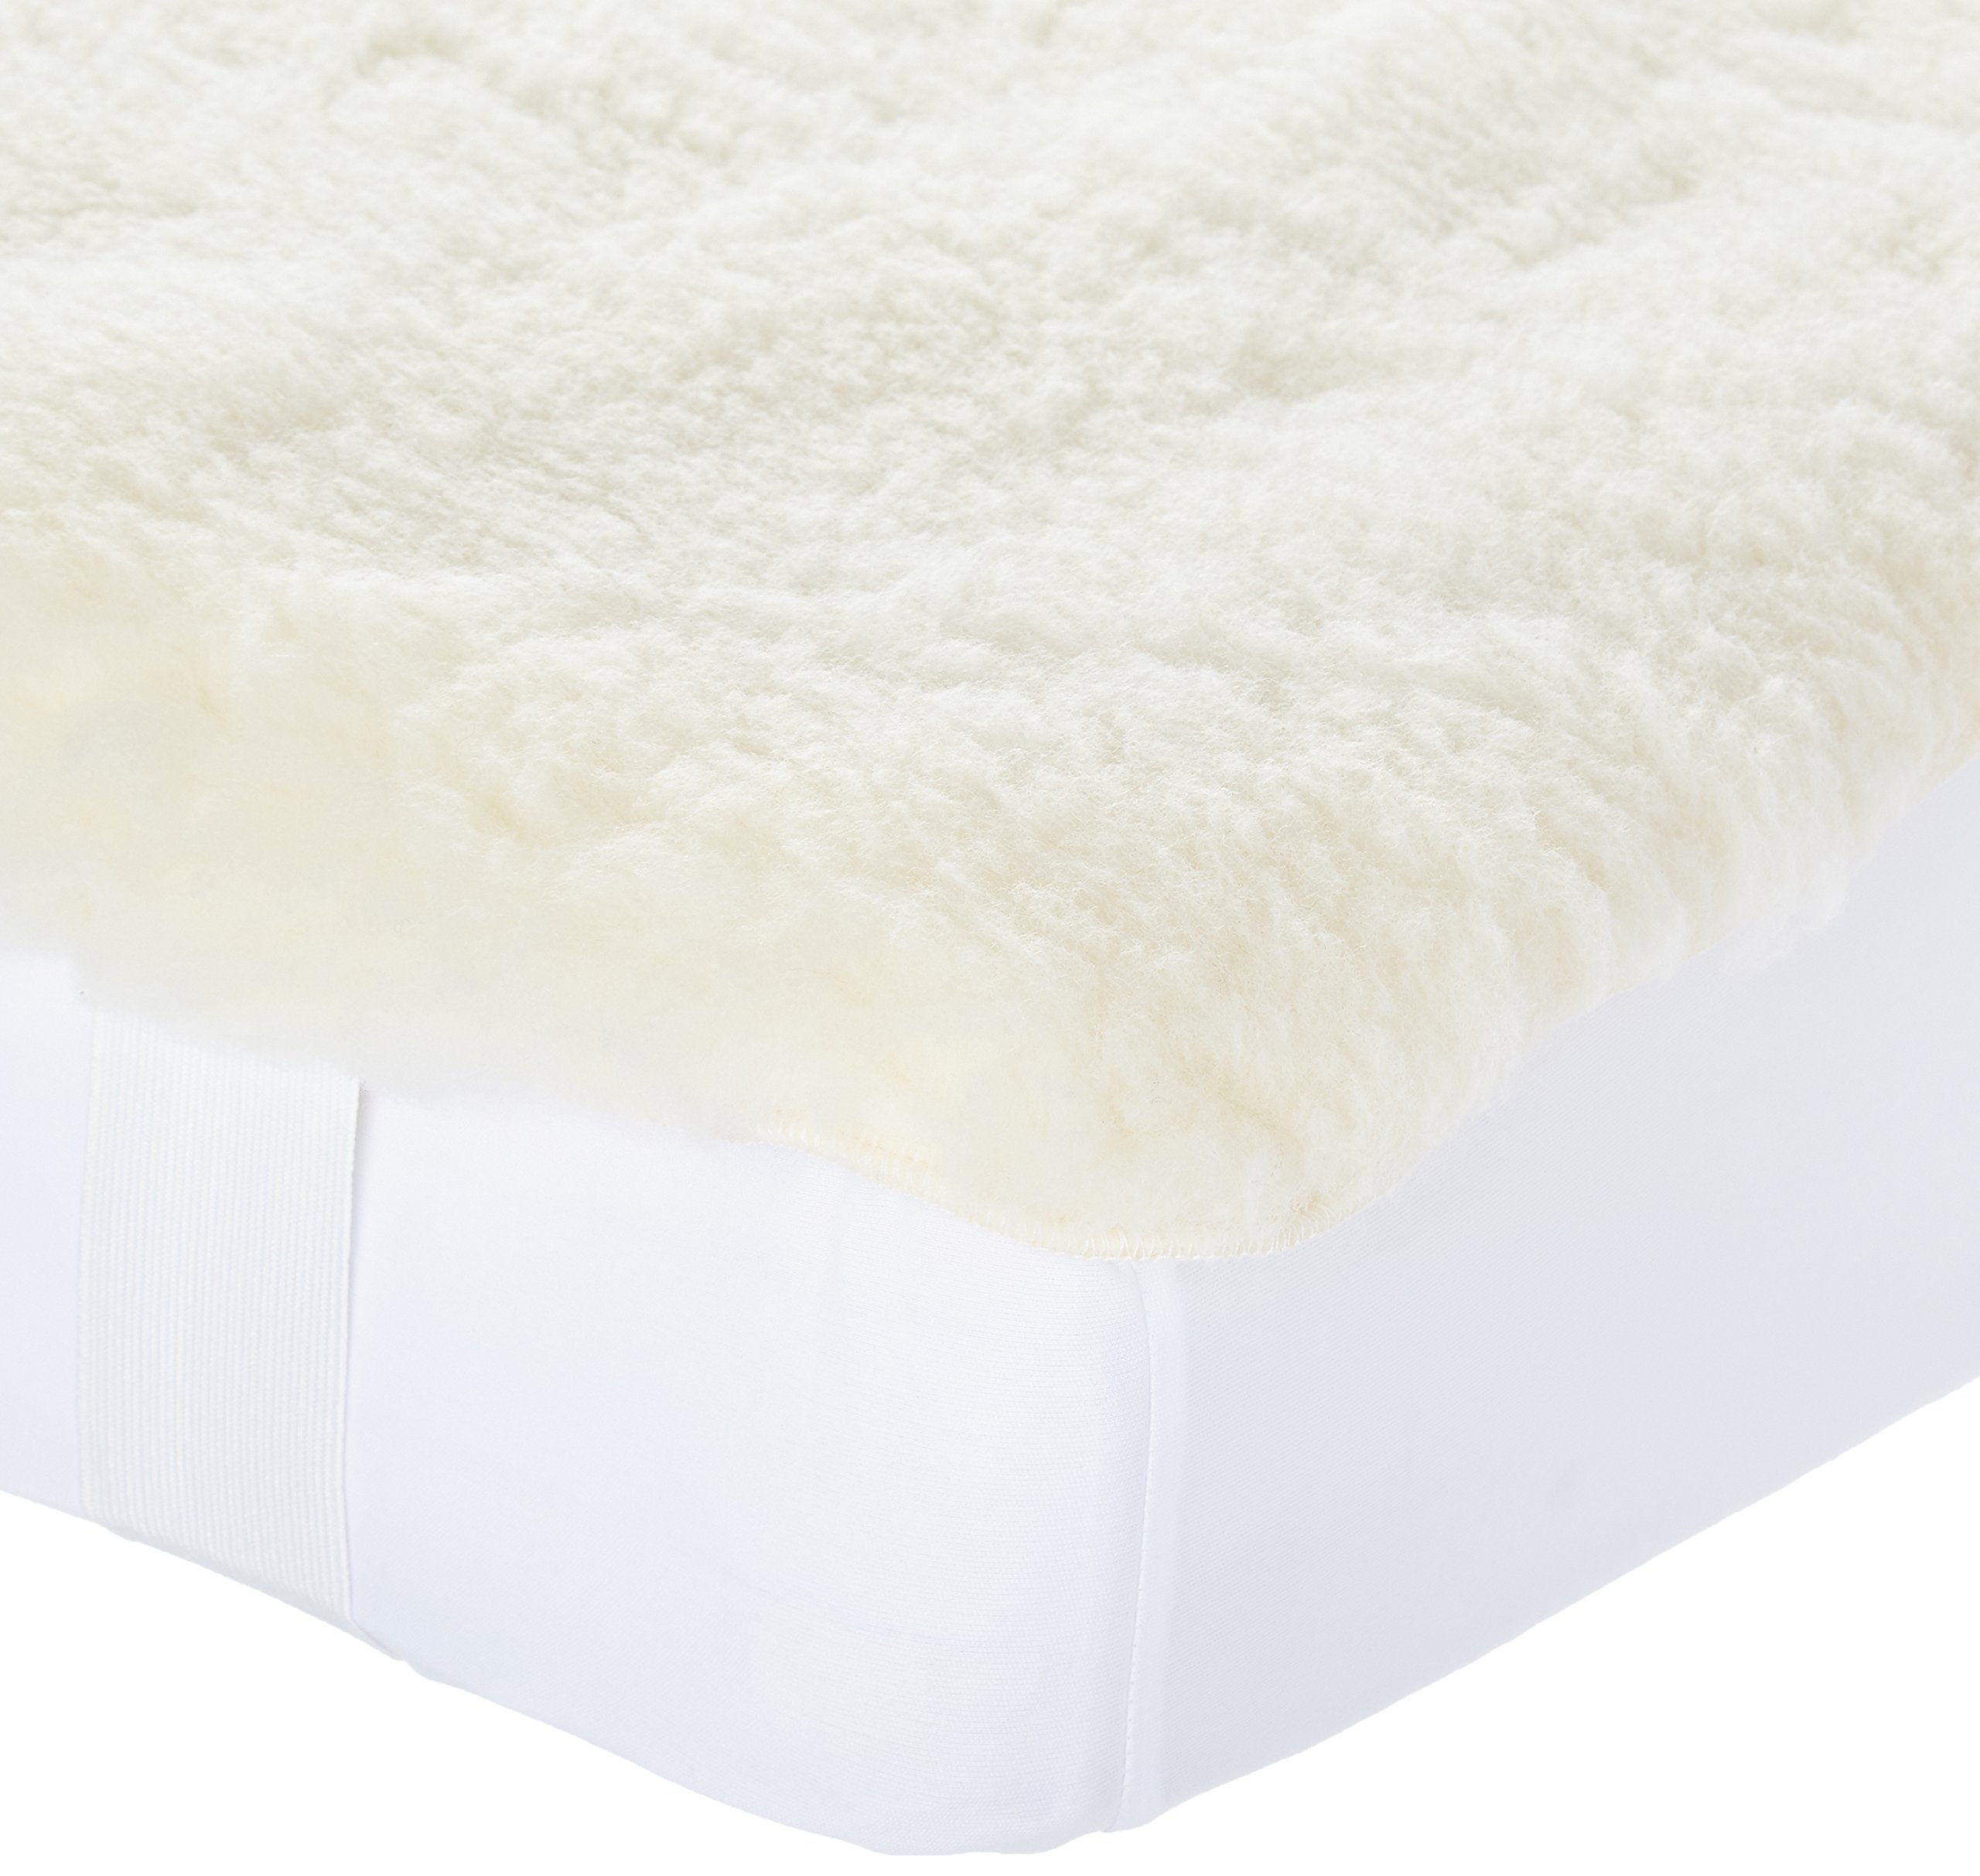 SnuggleWool Lambs Wool Pad Crib, 28'' L x 52'' W by SnuggleWool